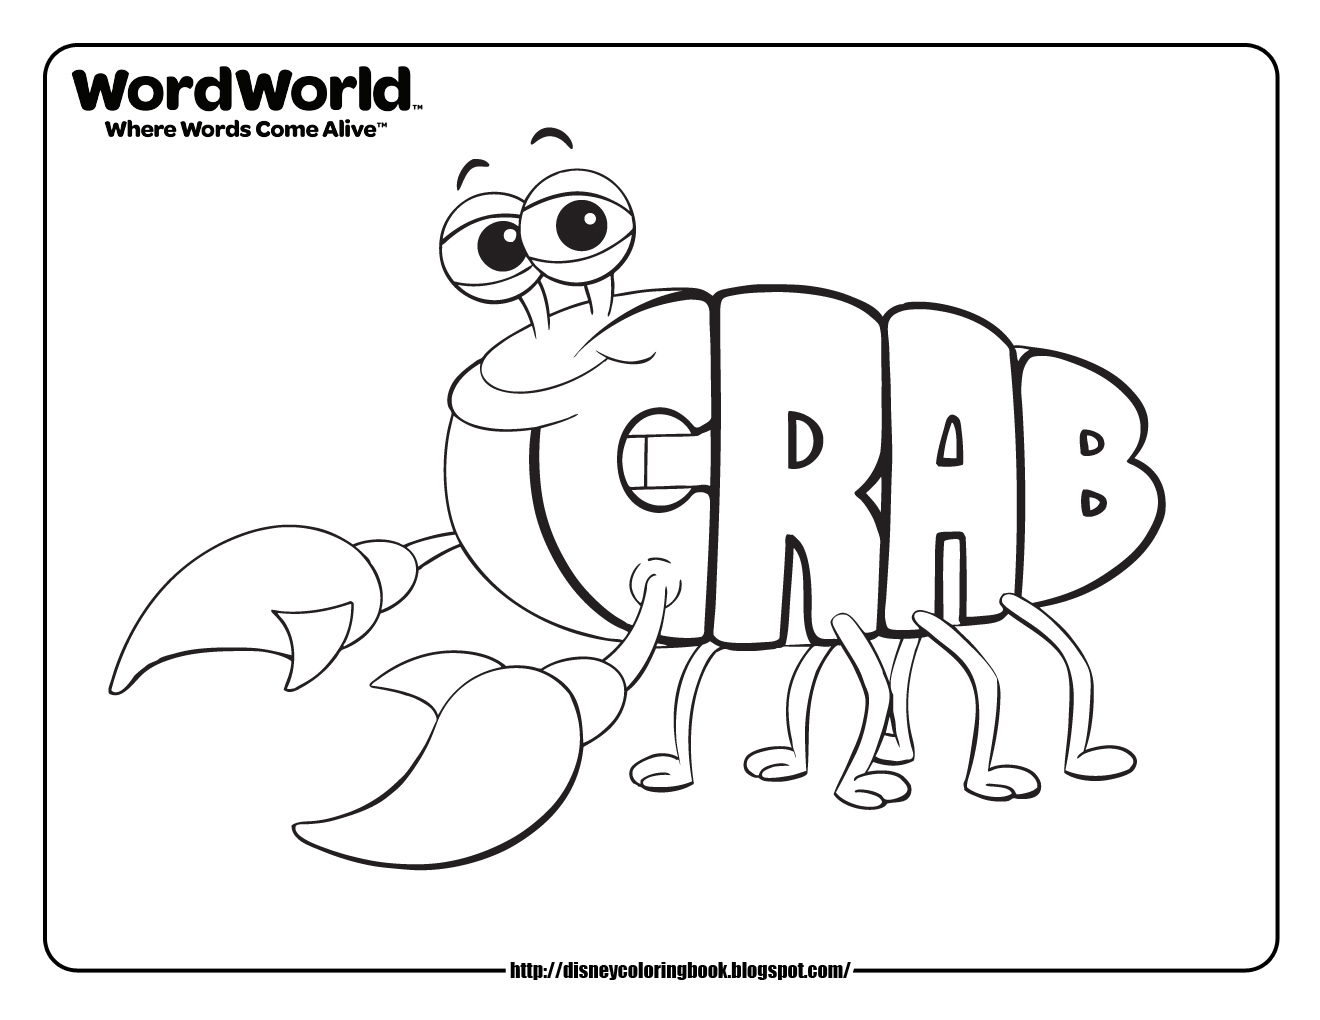 Disney Coloring Pages and Sheets for Kids: WordWorld 2 ...